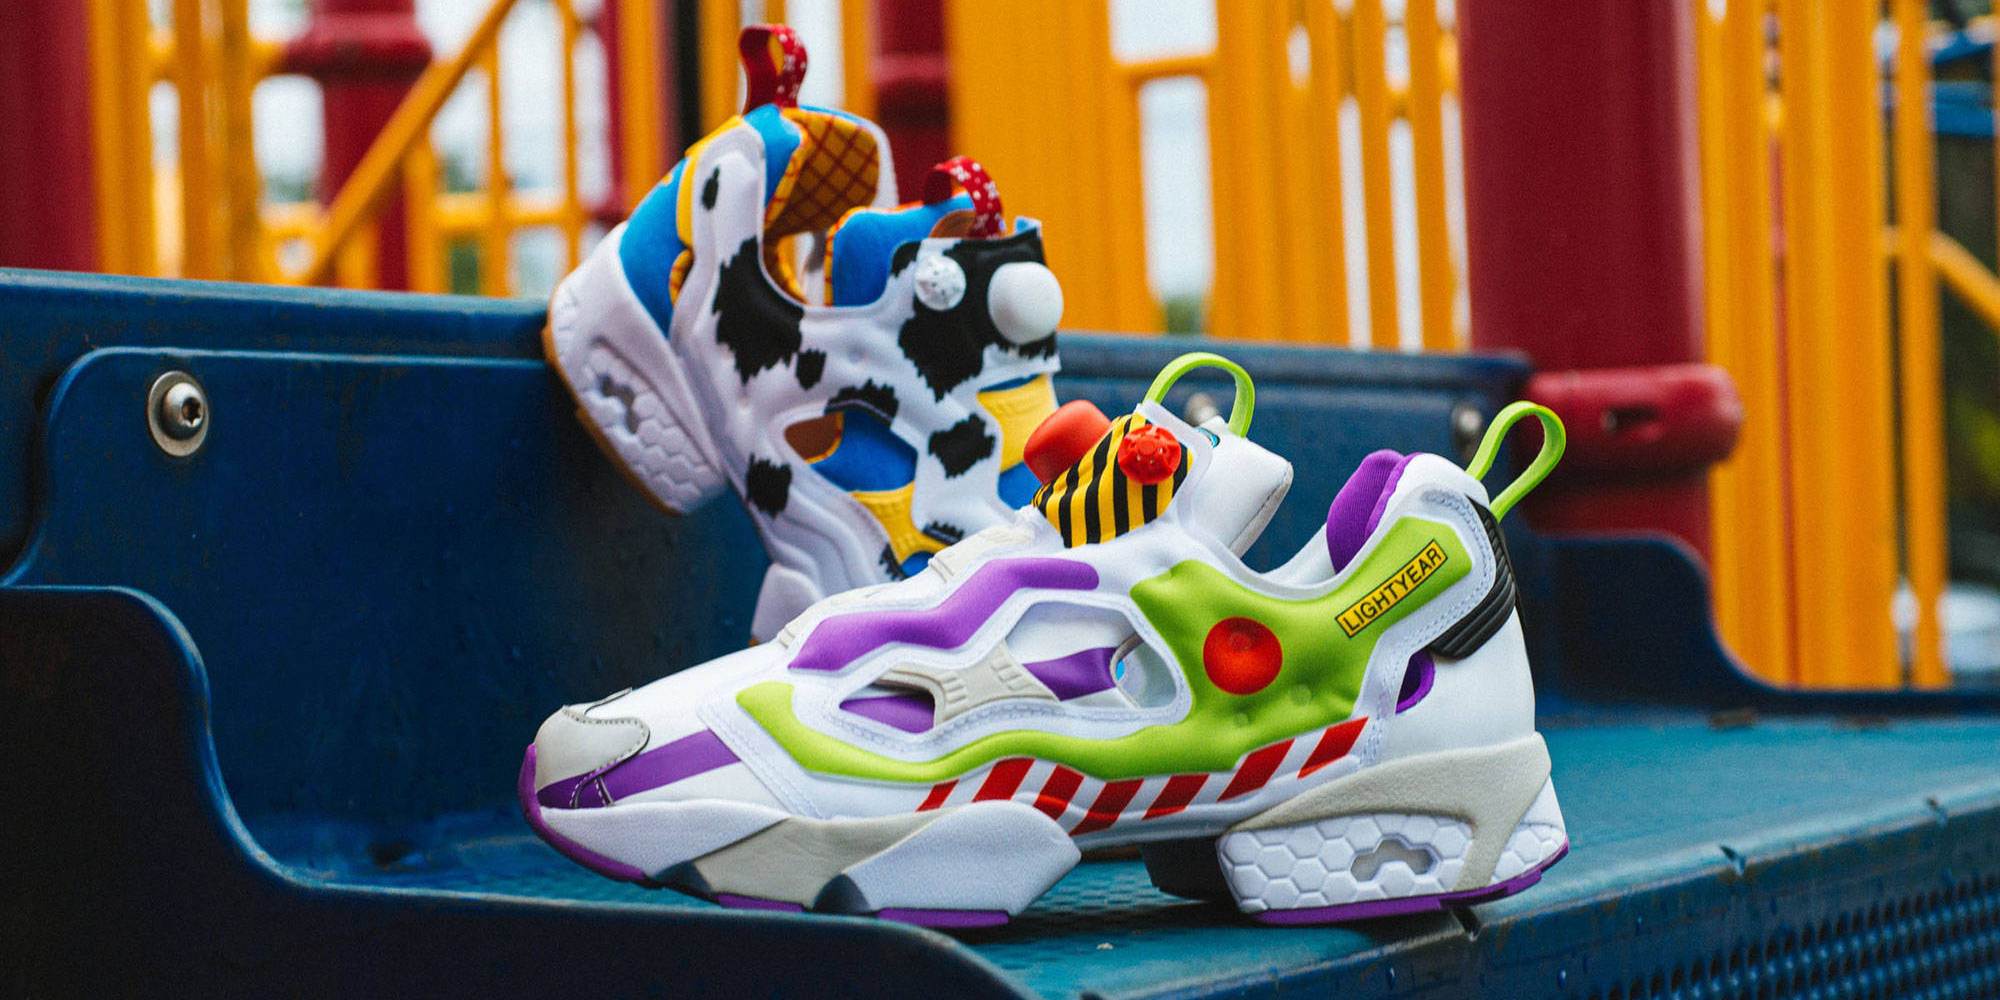 Toy Story Reebok sneakers put Woody and